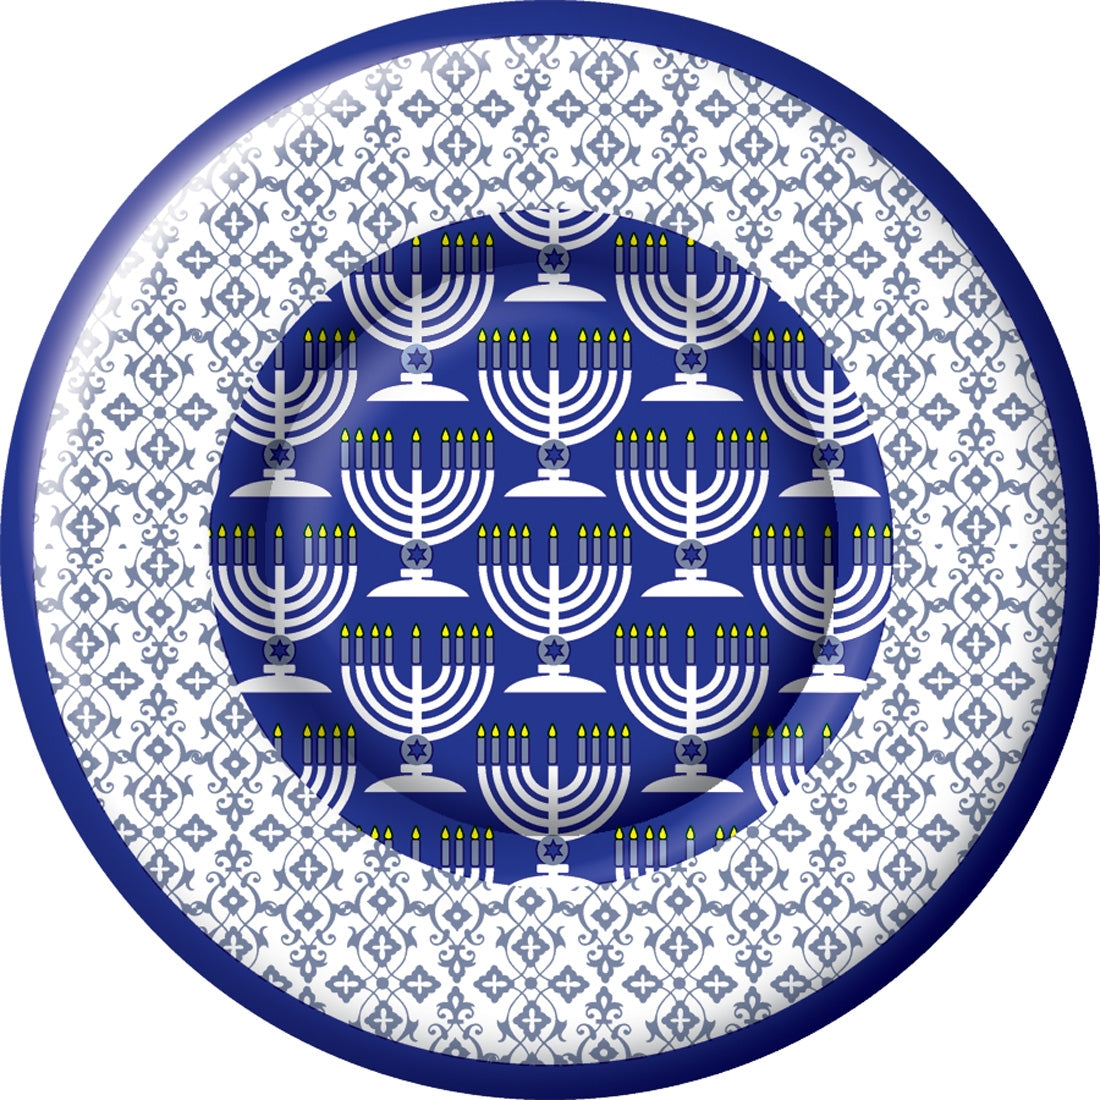 Festival of Lights Hanukkah Lunch Plates | The Party Darling